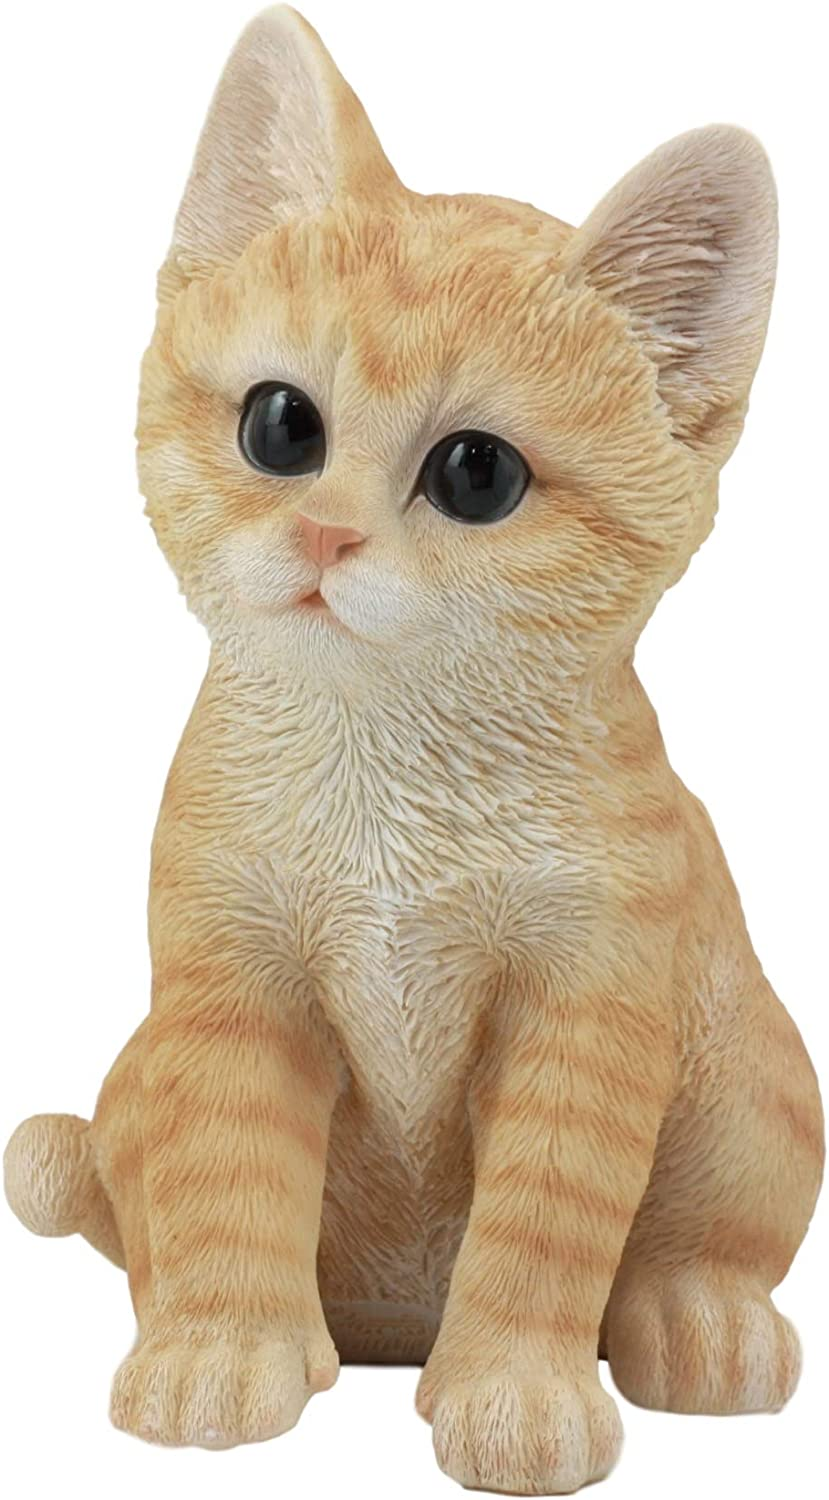 "Ebros Lifelike Sitting Orange Tabby Cat Statue 7.5"" Tall with Glass Eyes Hand Painted Realistic Feline Cat Decor Figurine"